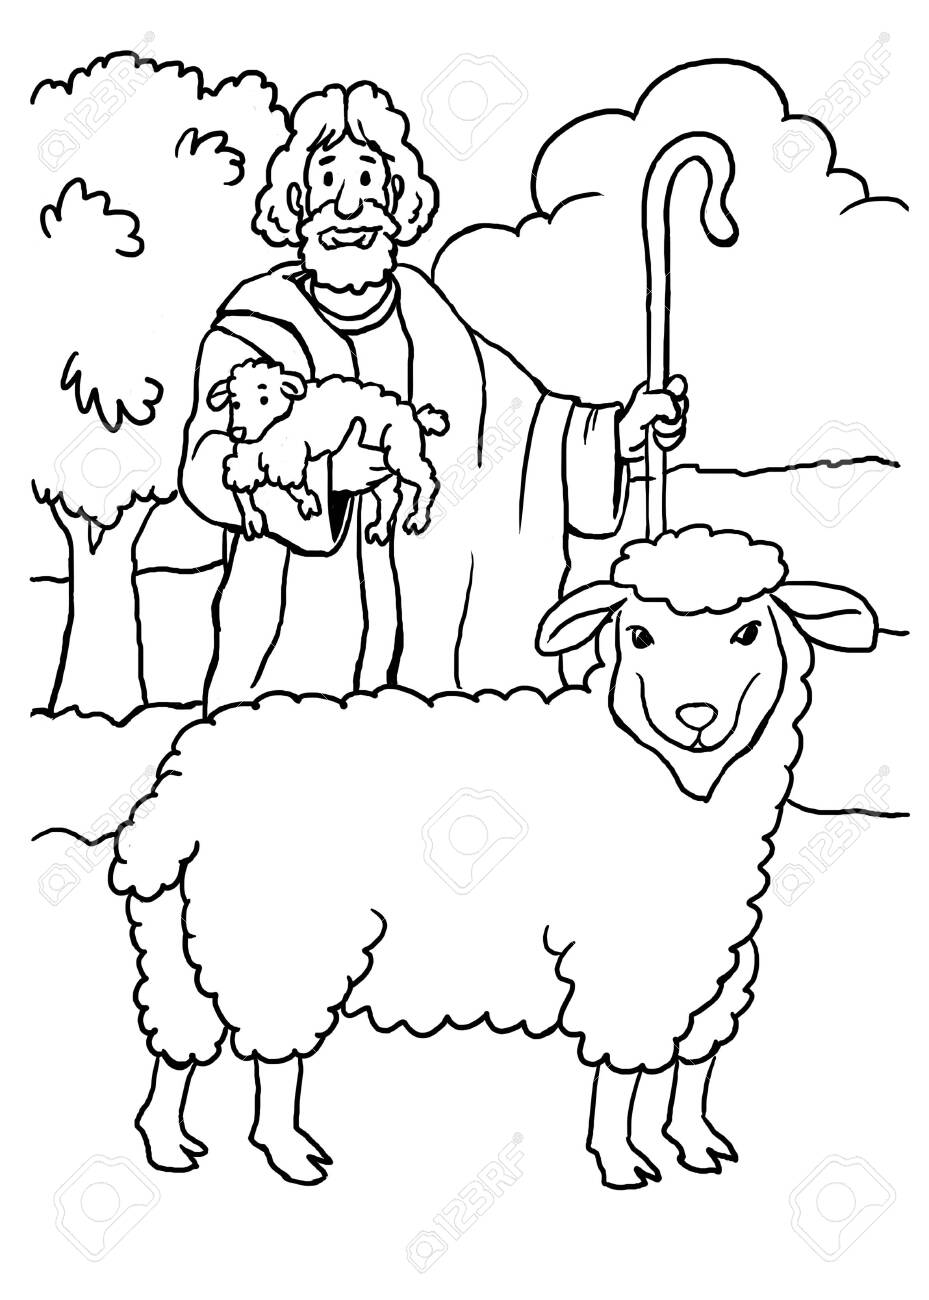 Coloring Page Of Jesus As The Good Shepherd Stock Photo Picture And Royalty Free Image Image 125684797